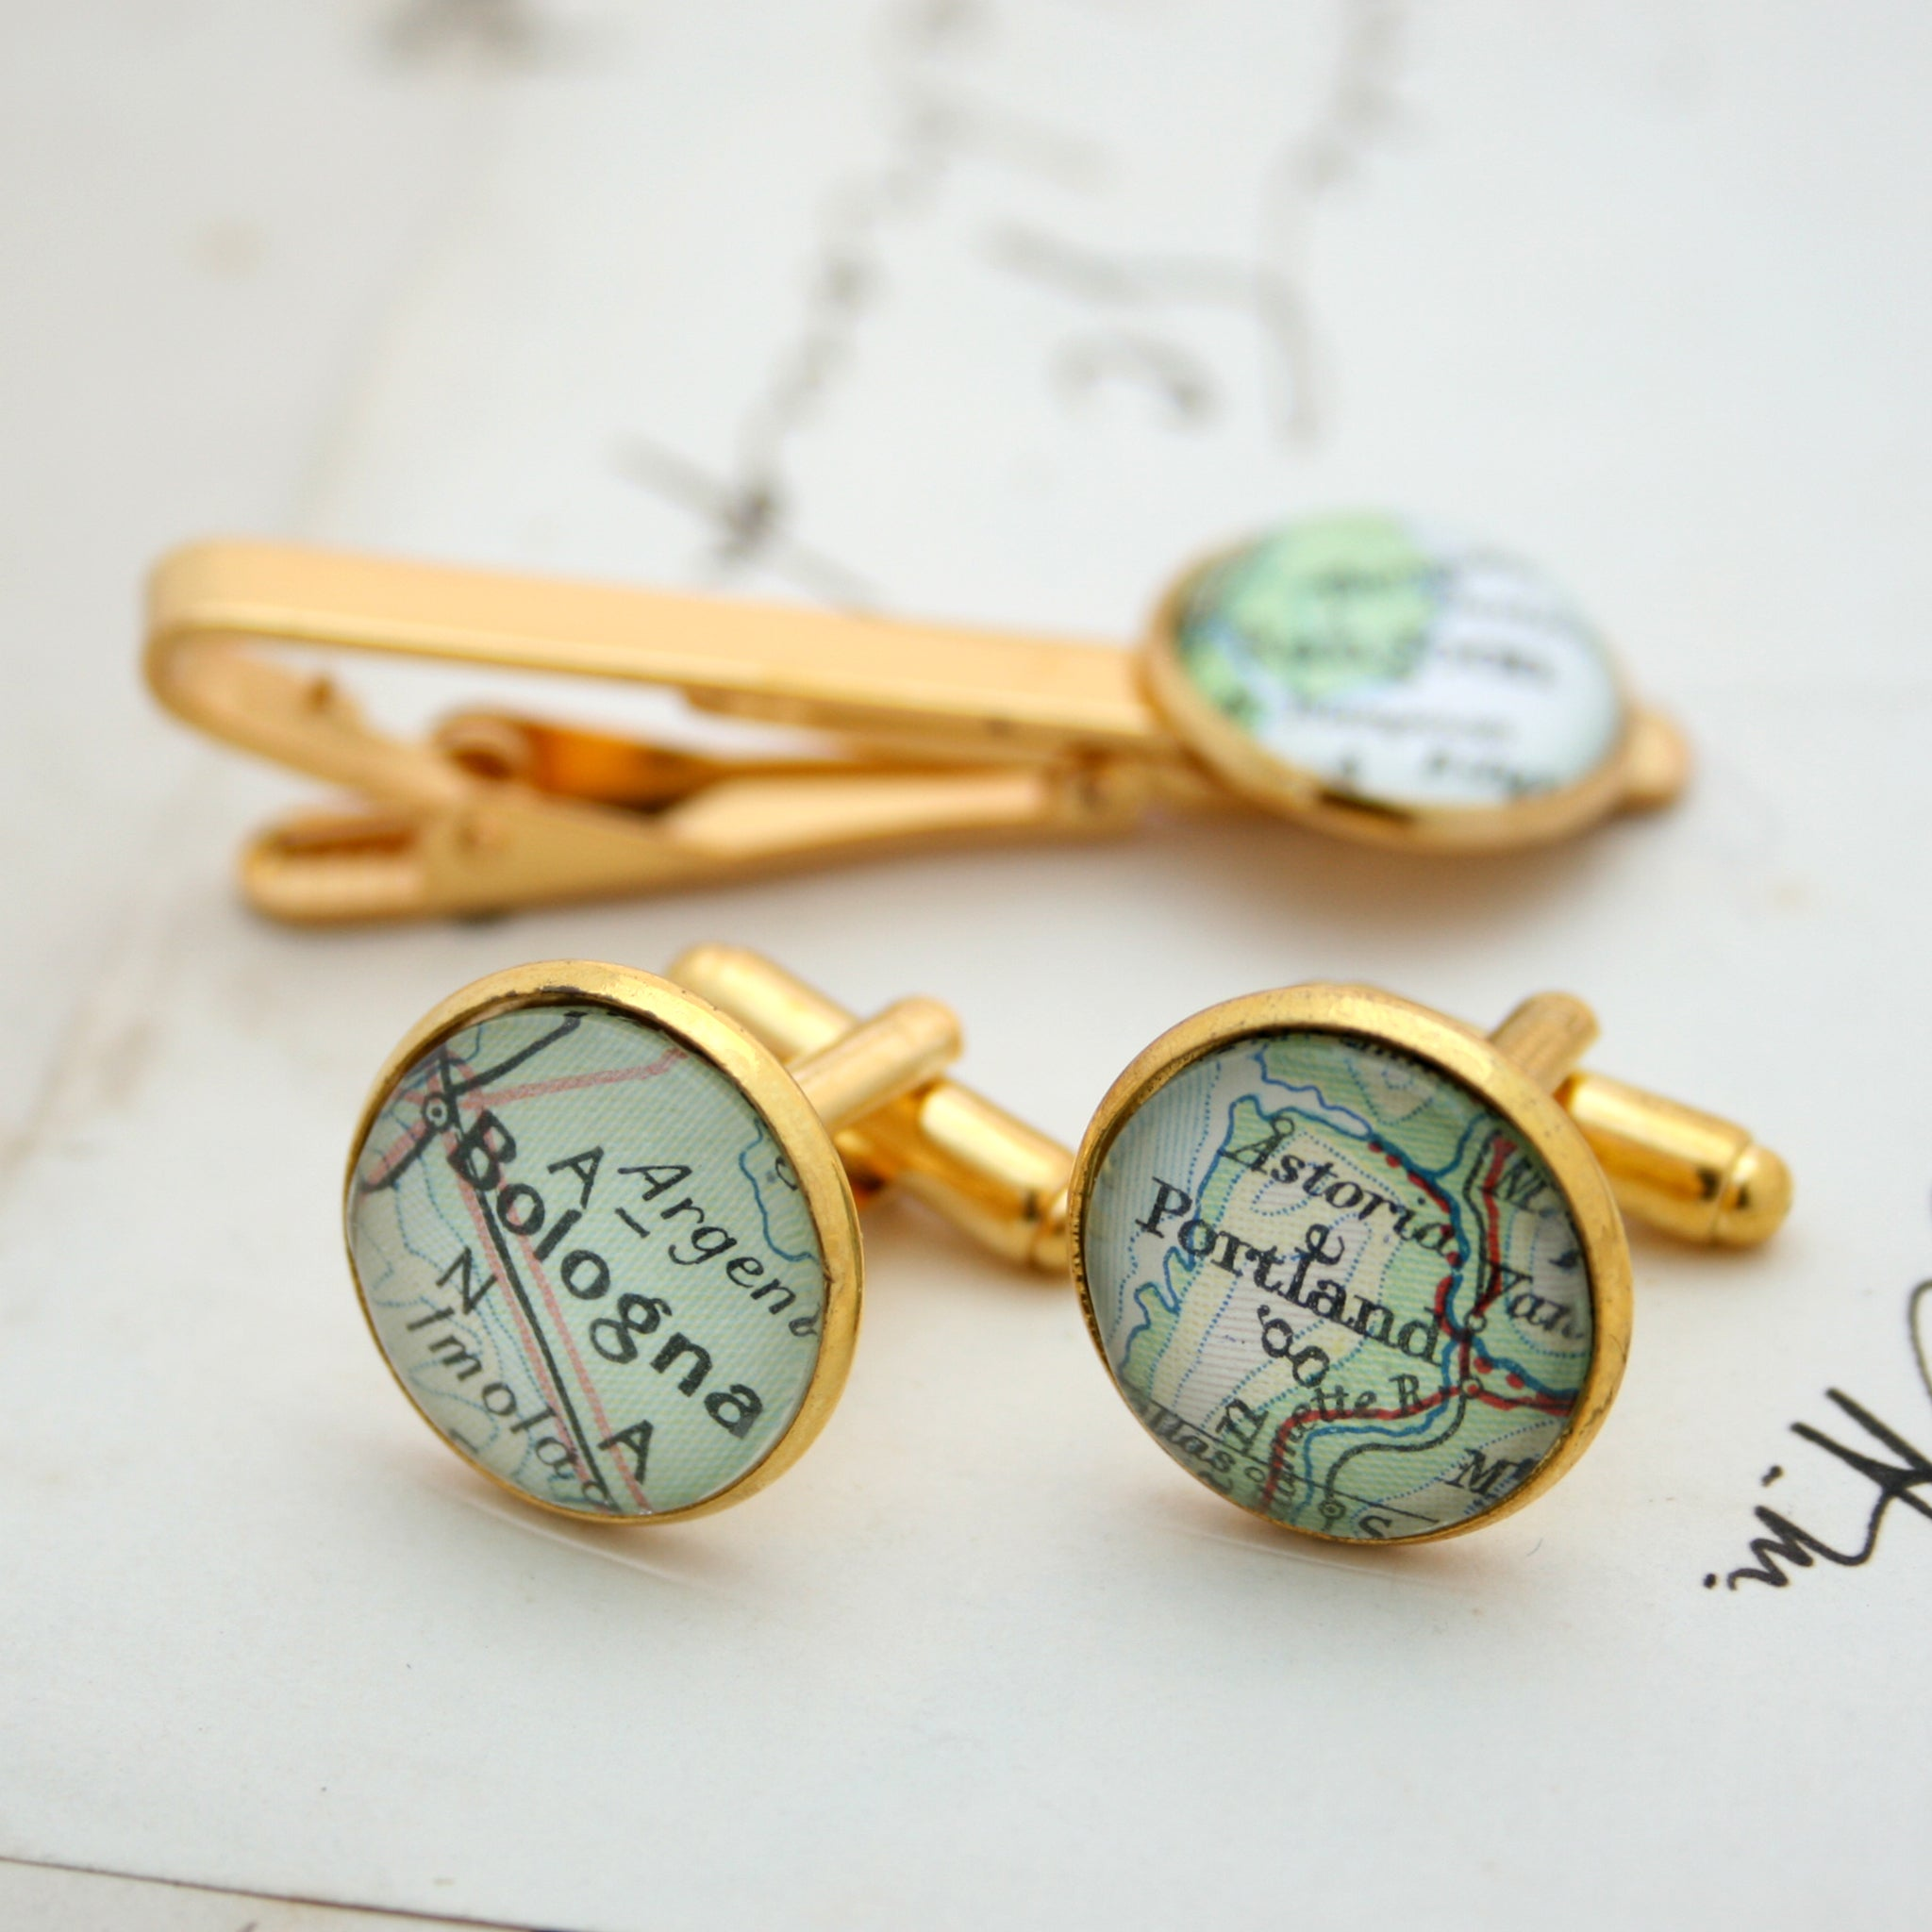 Tie clip and cufflinks in gold color featuring selection of map locations